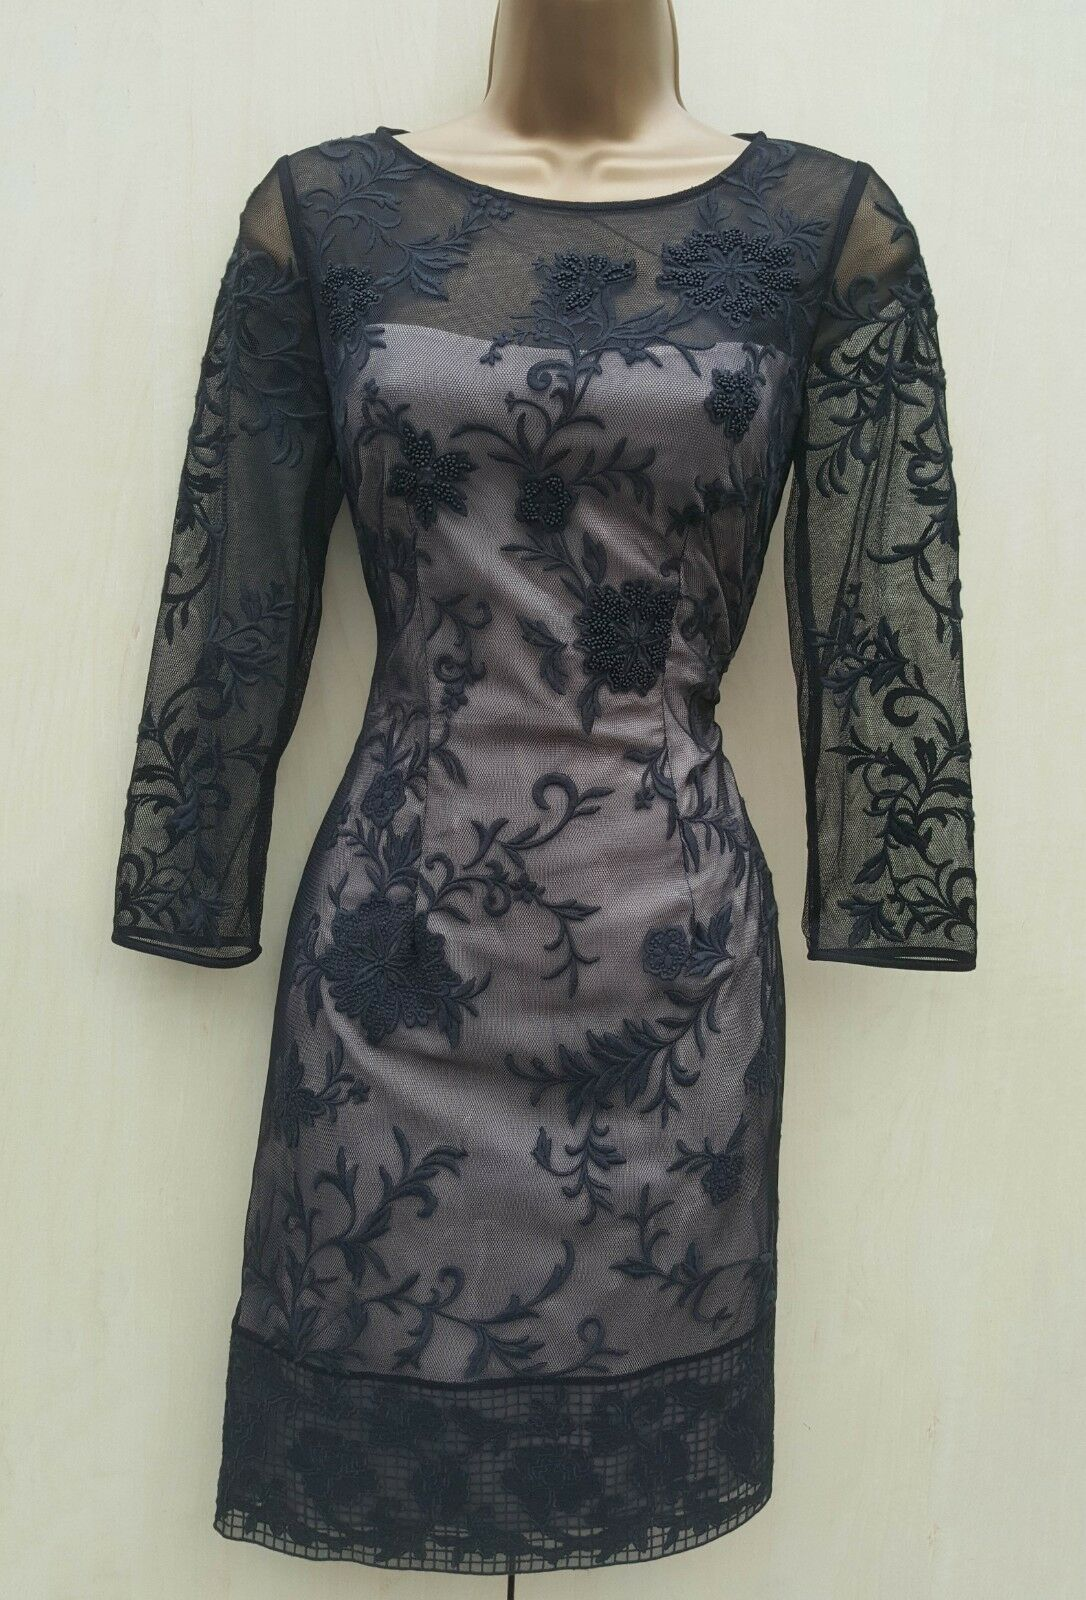 Taglia 10 UK KAREN MILLEN Nero Maglia Floreale Ricamato Ricamato Ricamato Con Perline Party Mini Dress 064673